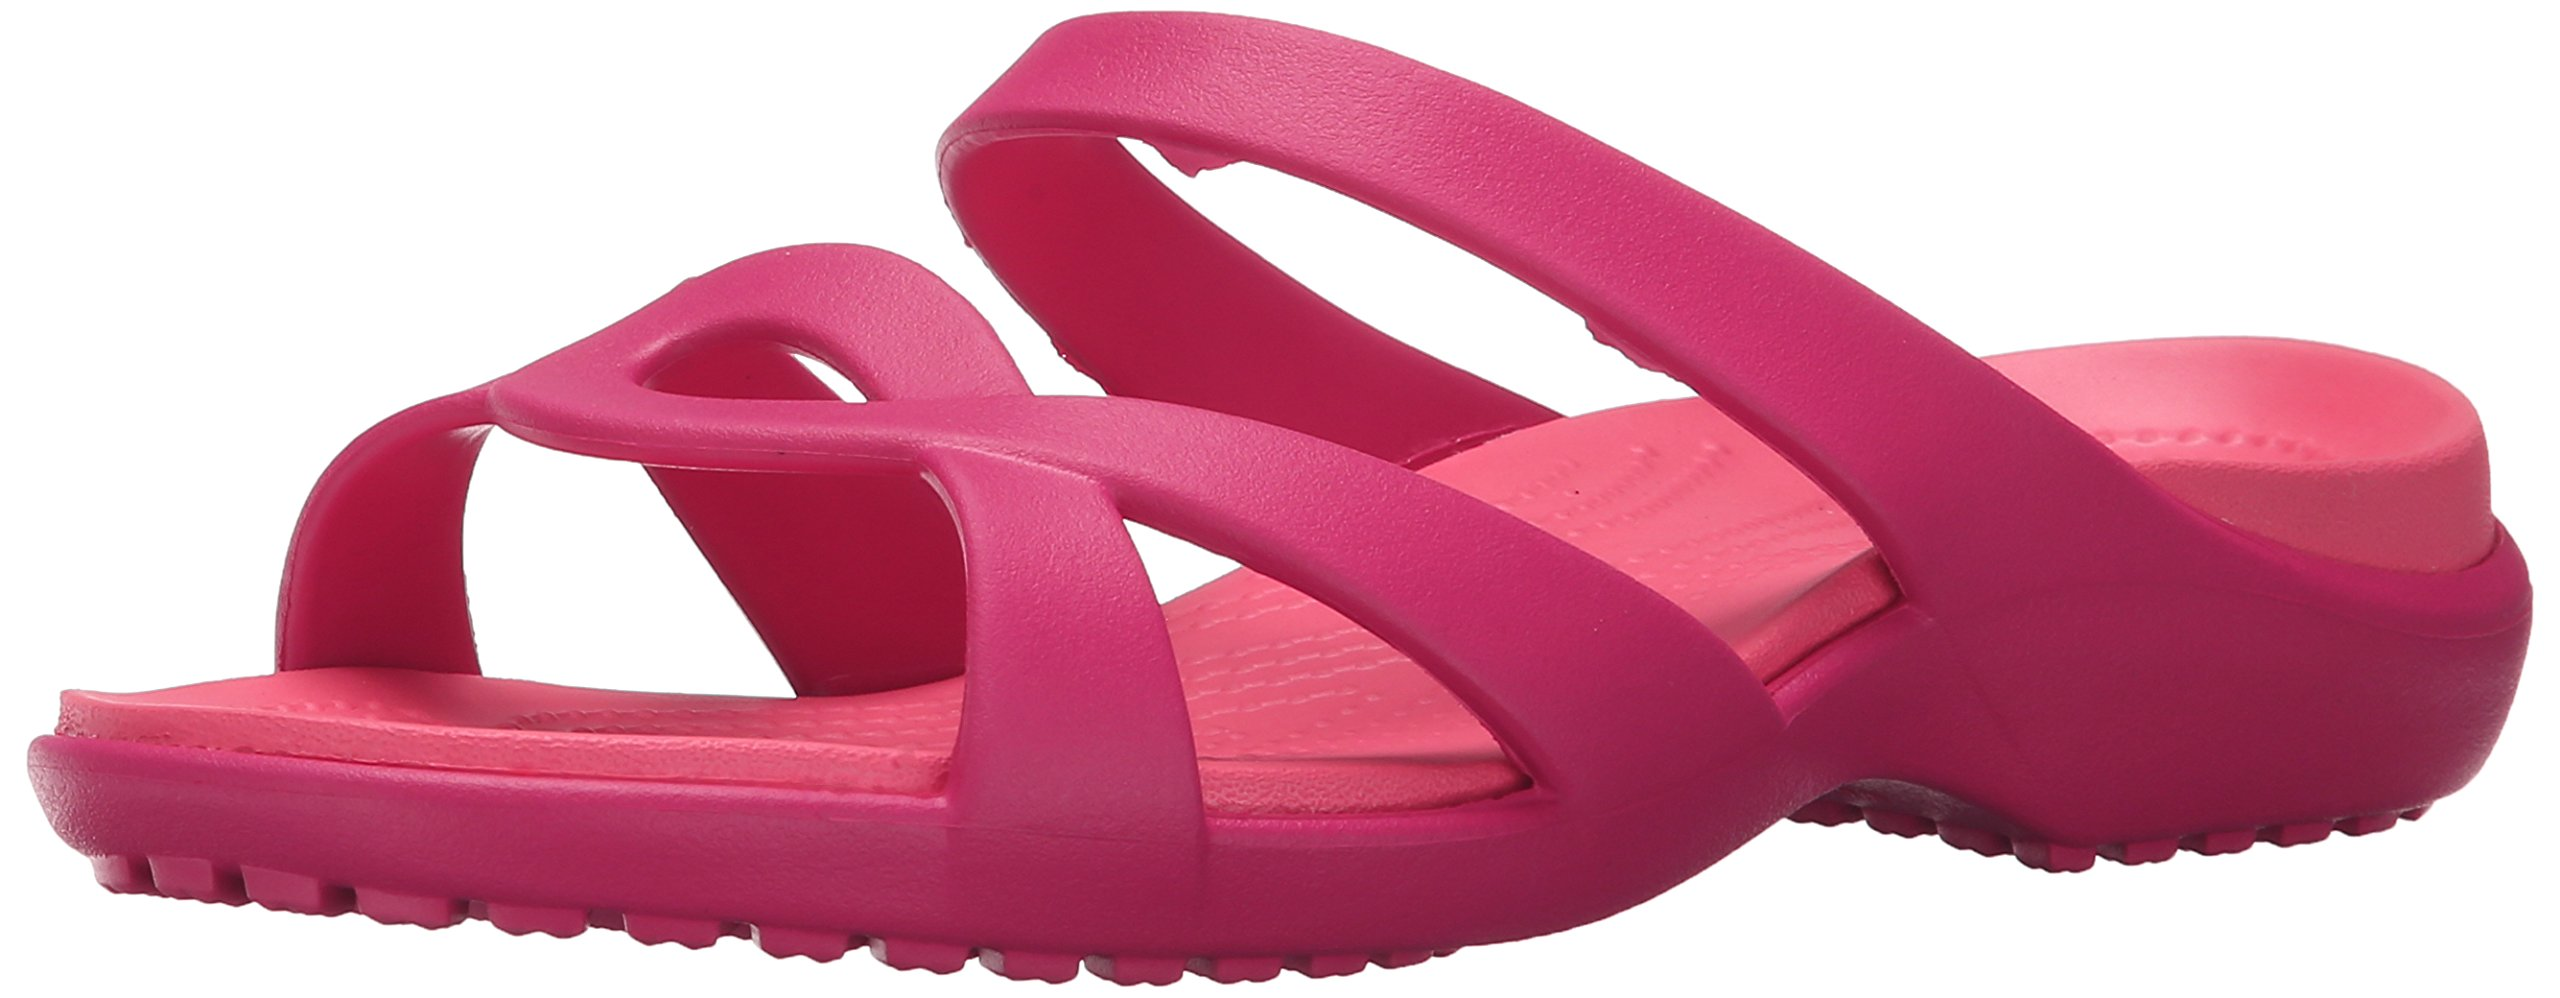 Crocs Women's Meleen Twist Wedge Sandal, Raspberry/Coral, 9 M US